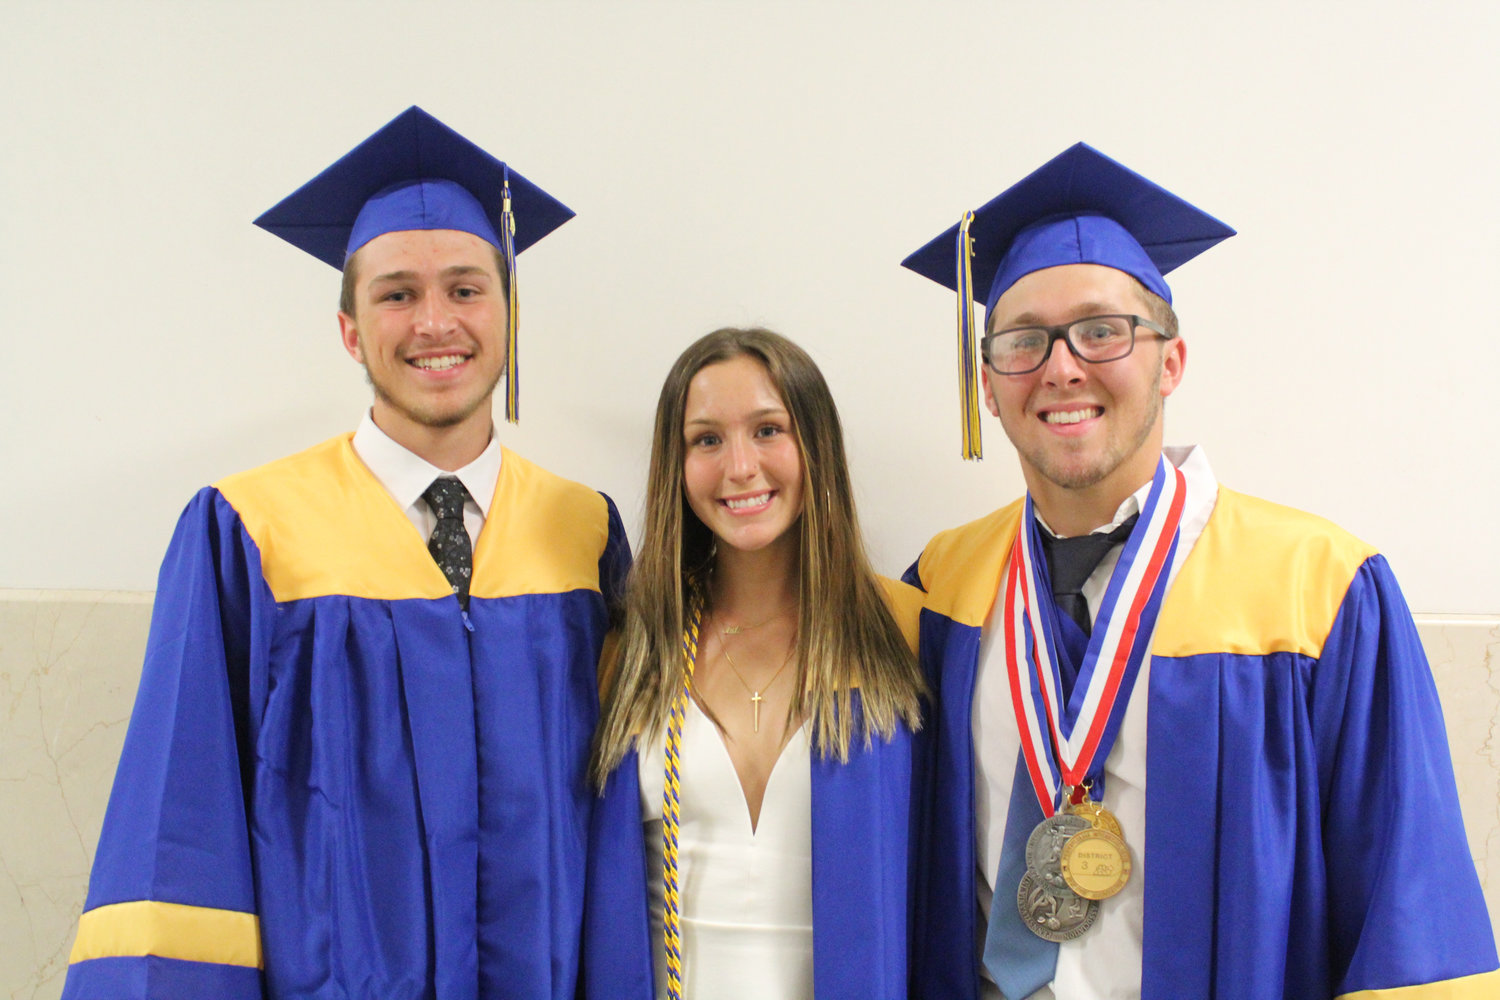 Jaxson, Jade and Cole Senior pose before graduation June 4.